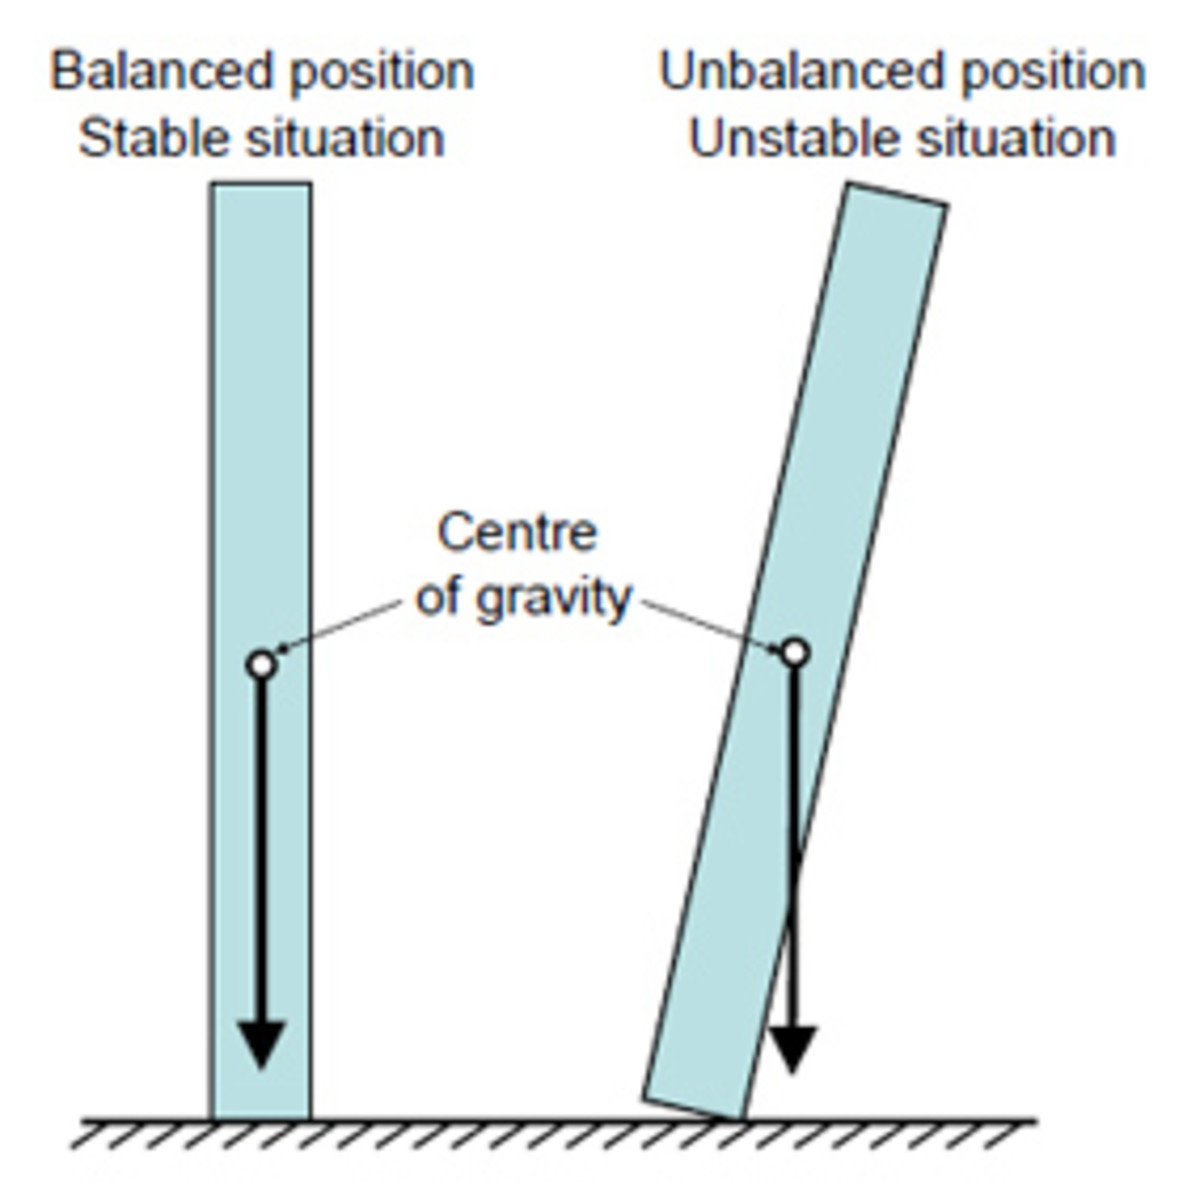 When the center of gravity is no longer positioned over the base, the object falls over. Therefore, the smaller the base, the less stable the object.